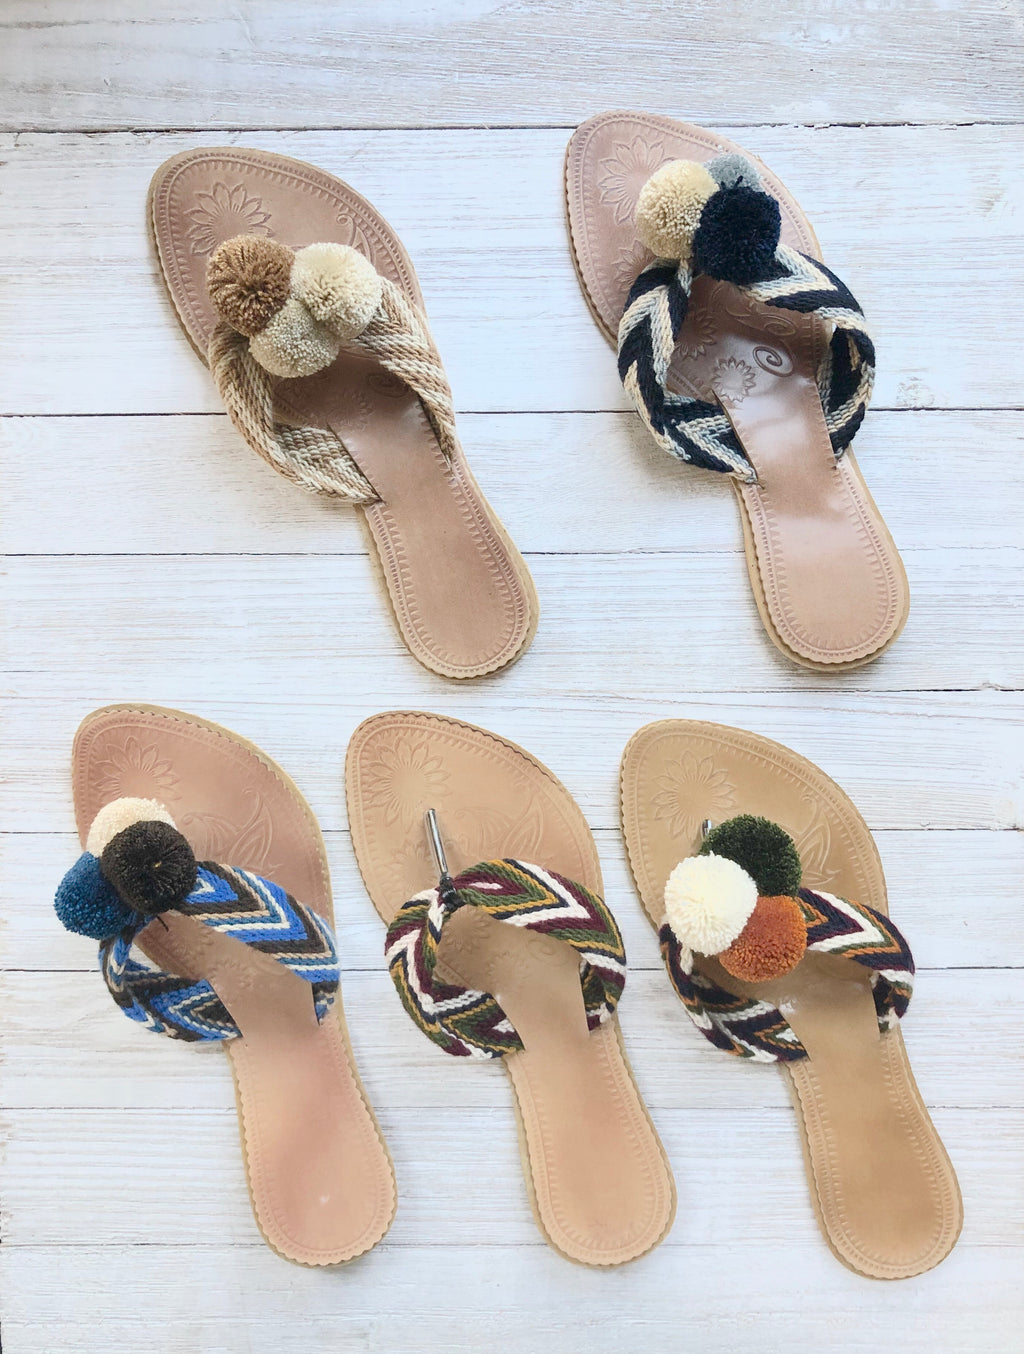 Earth Tones Pom Pom Sandals-Summer Flip-Flops-Boho Flat Sandals-Slides